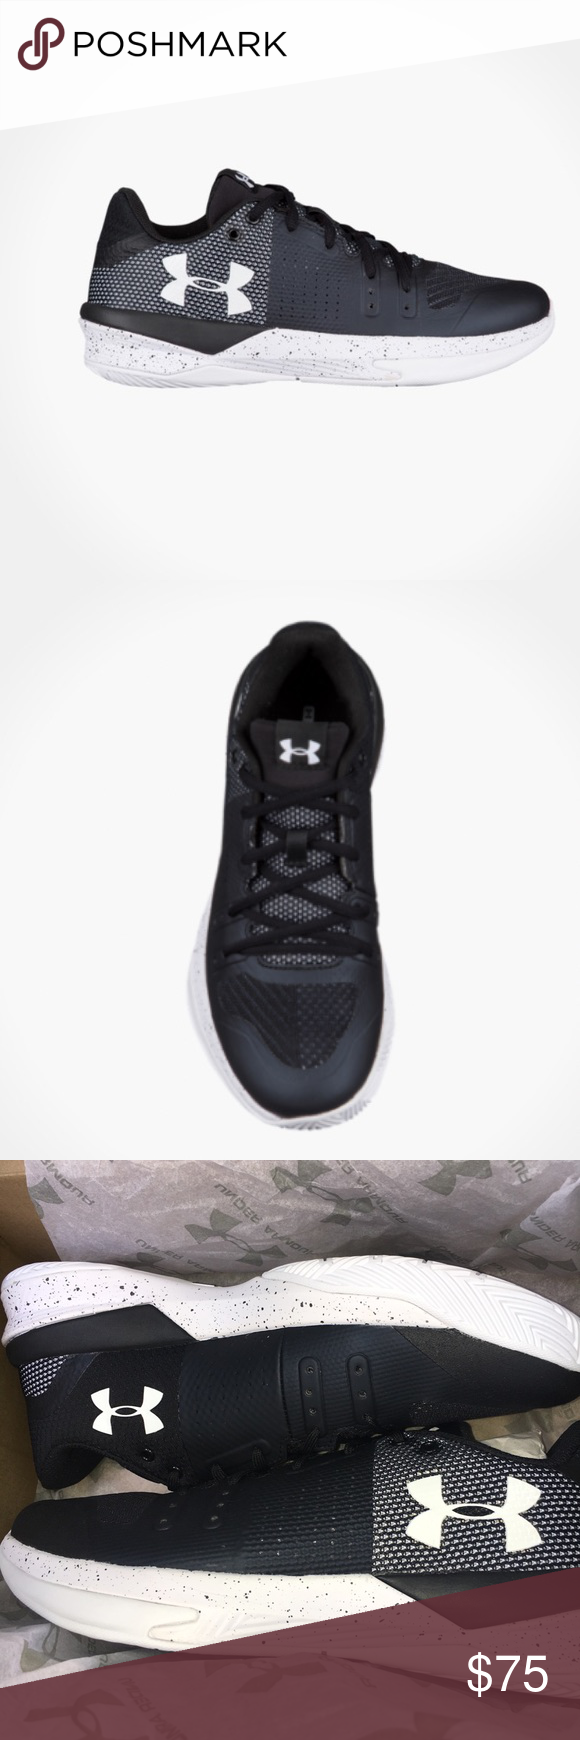 Brand New Under Armor Volleyball Shoes Brand New Volleyball Shoes Under Armour Shoes Sneakers Voleyball